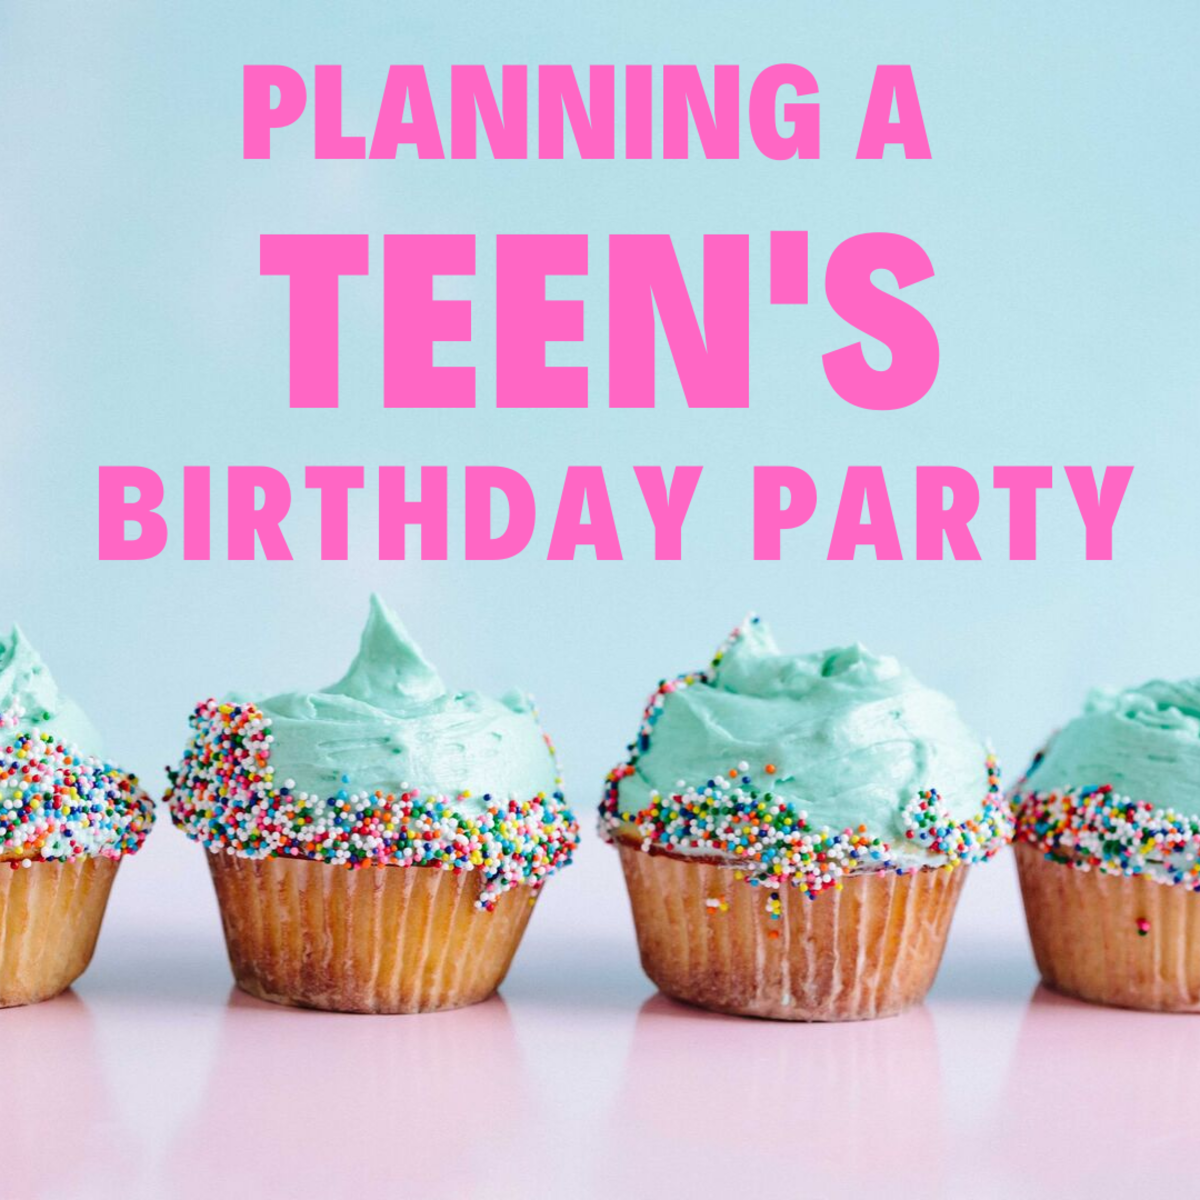 How to Celebrate a Teenager's Birthday